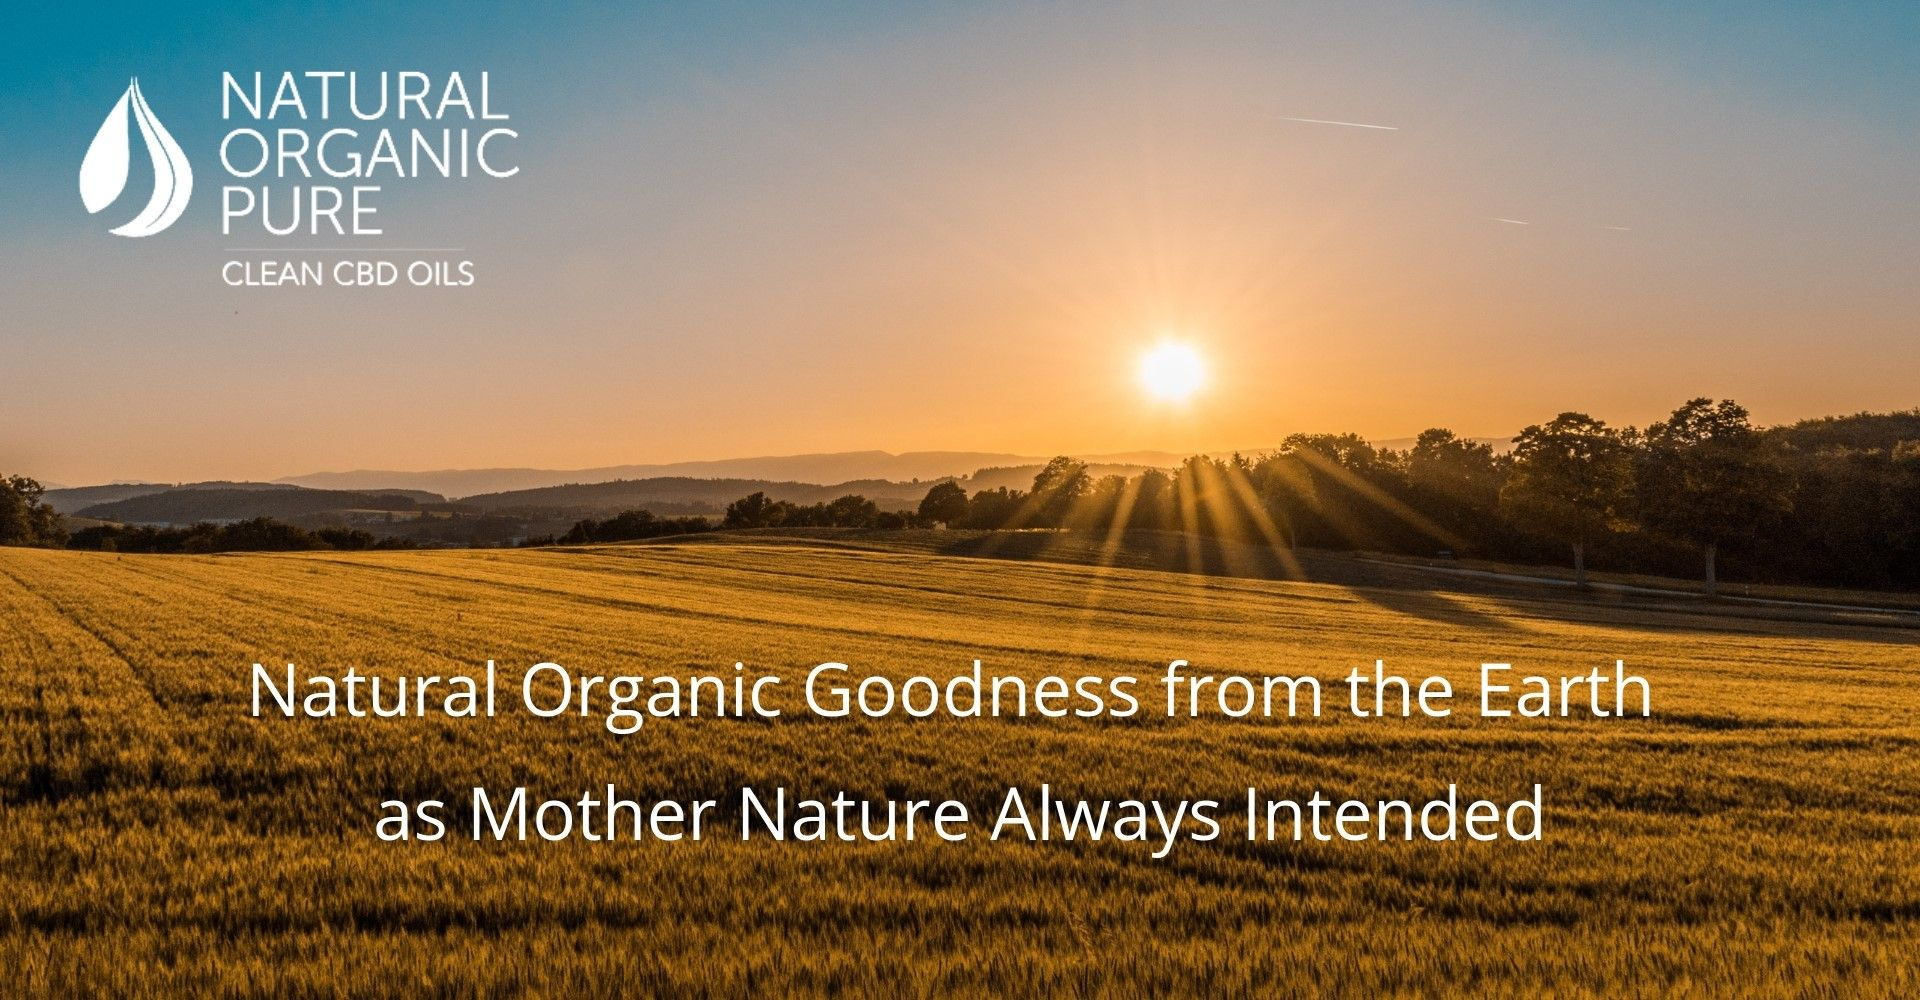 Organic image of field with sunset | title Natural Organic Goodness from the earth as mother nature always intended | Natural Organic Pure Clean CBD Oils